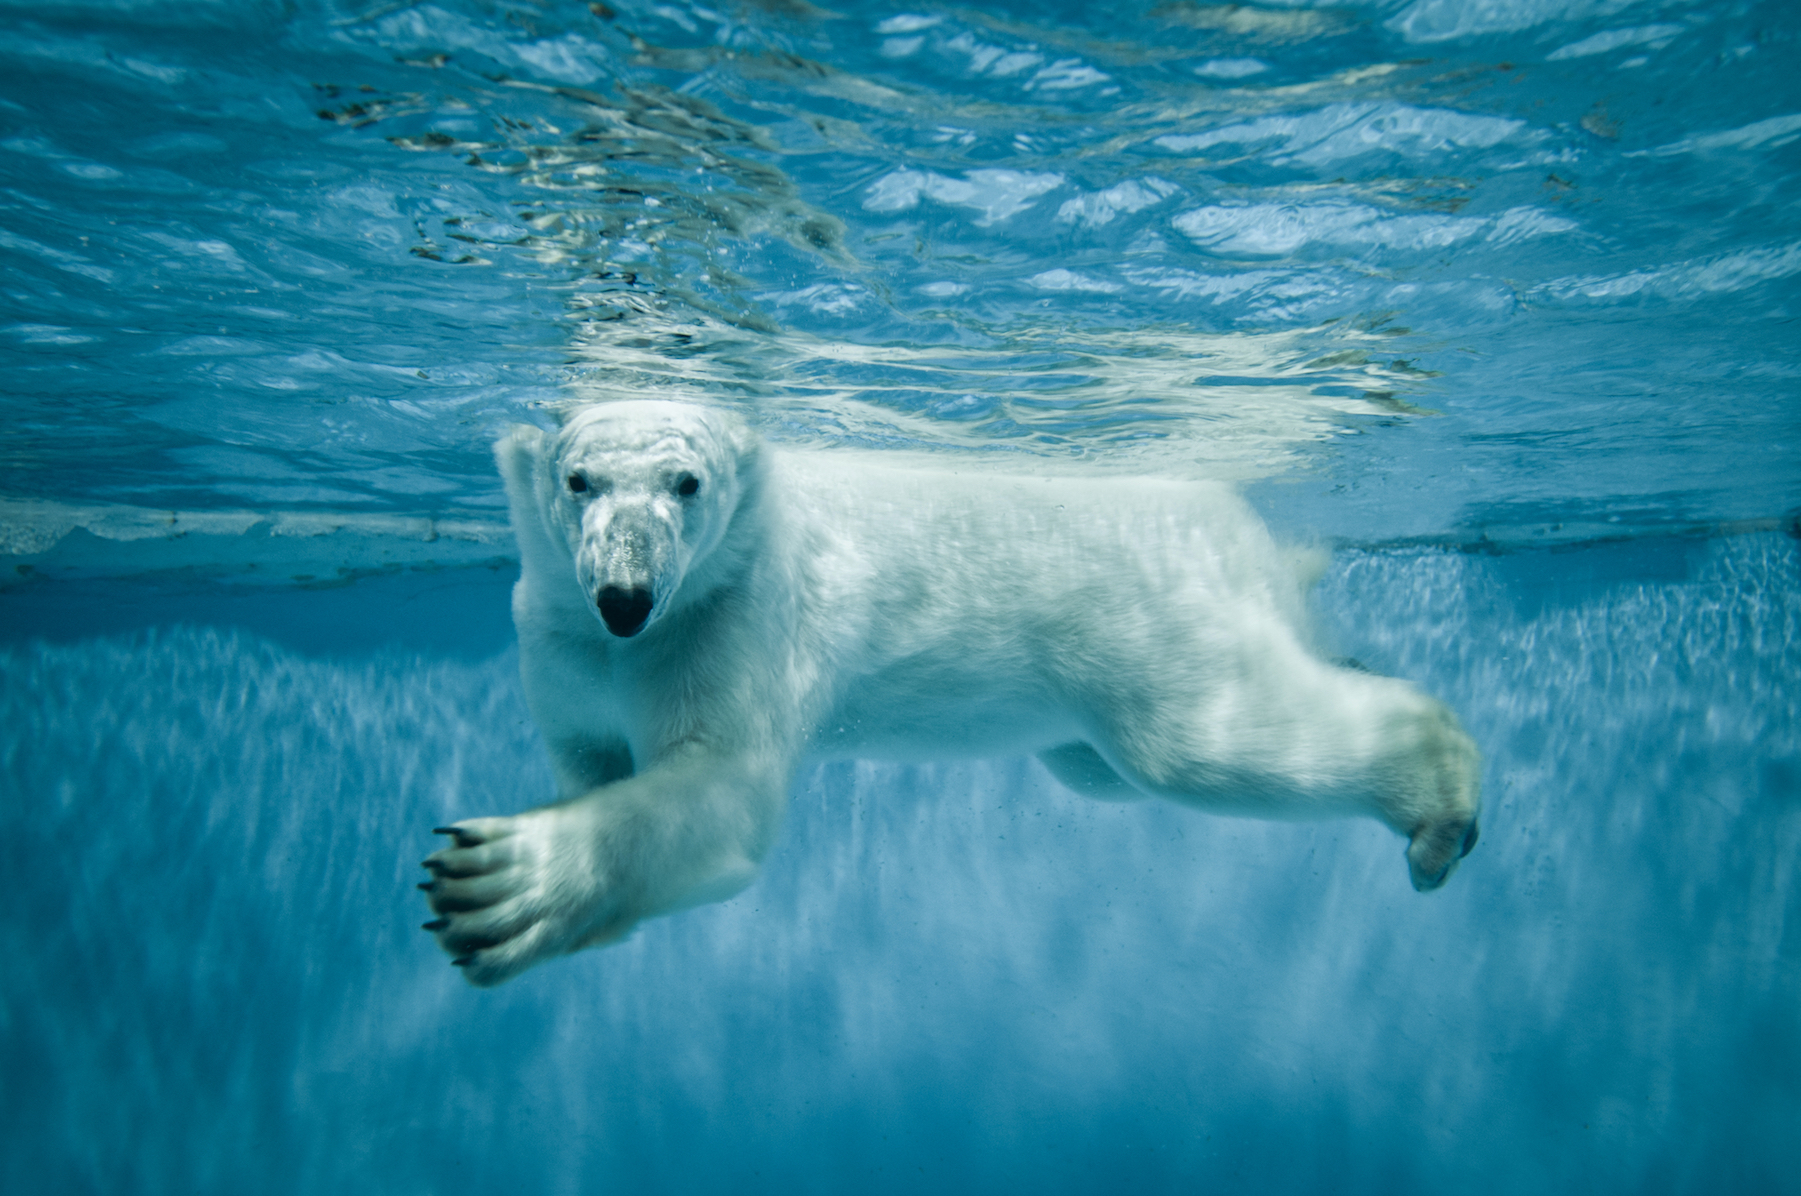 Researchers have discovered the tactics behind how polar bears hunt for ringed seals. Hold onto your hat because this answer may shock you.